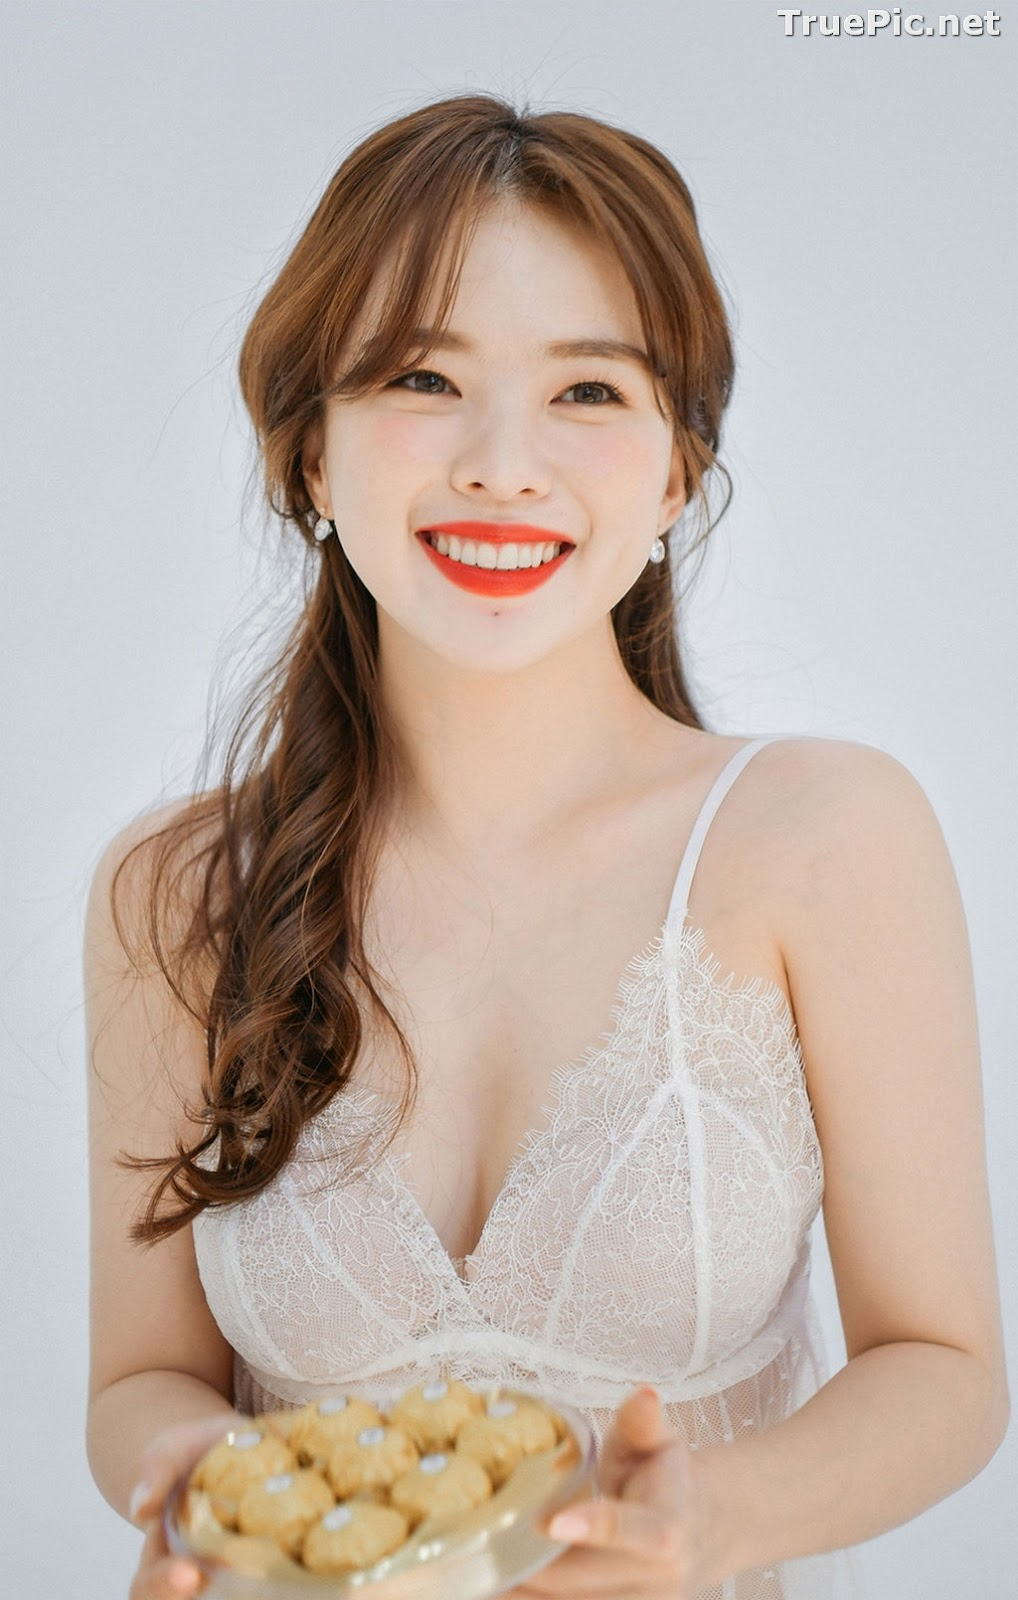 Image Korean Lingerie Queen – Haneul – White and Yellow Lingerie Set - TruePic.net - Picture-4